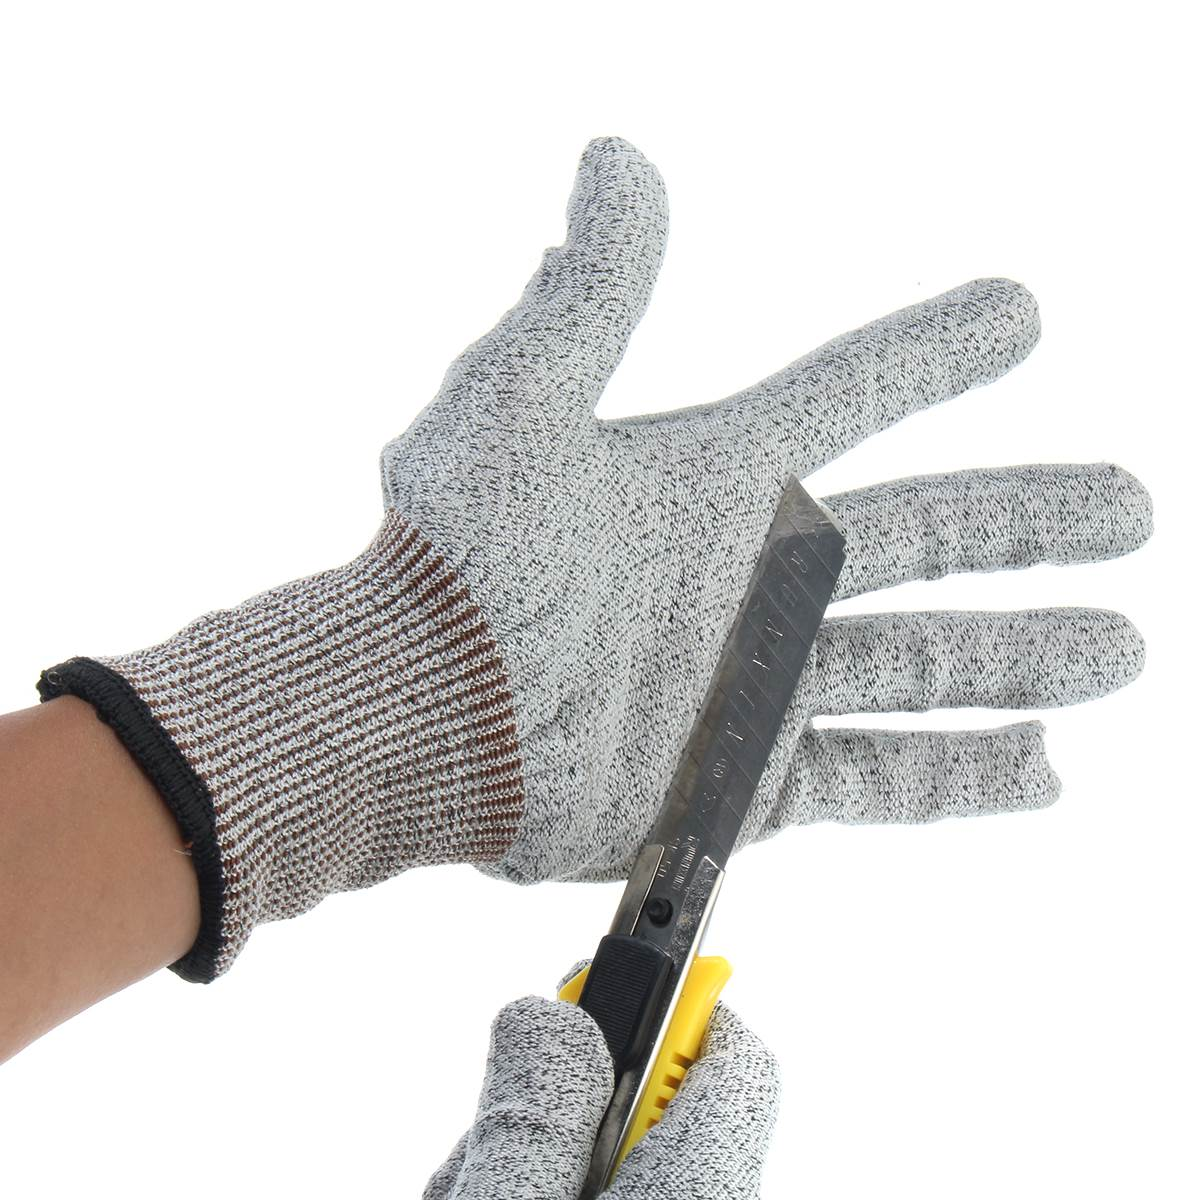 NEW Safety Cut Proof Stab Resistant Stainless Steel Wire Metal Mesh Butcher Gloves Cut-Resistant Safety Gloves safety cut proof stab resistant work gloves stainless steel wire safety gloves cut metal mesh butcher anti cutting work gloves